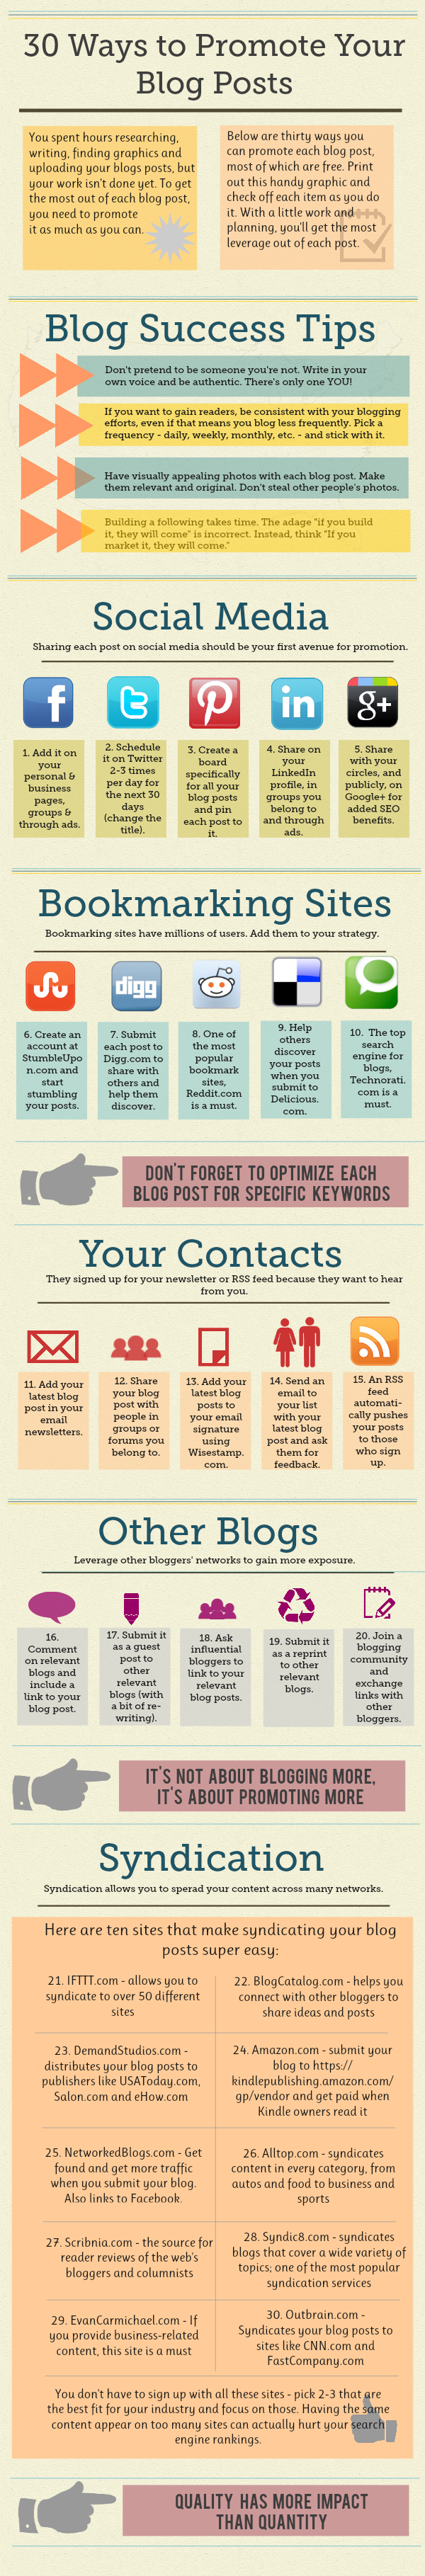 30-ways-to-promote-your-blog-posts-info-graphic